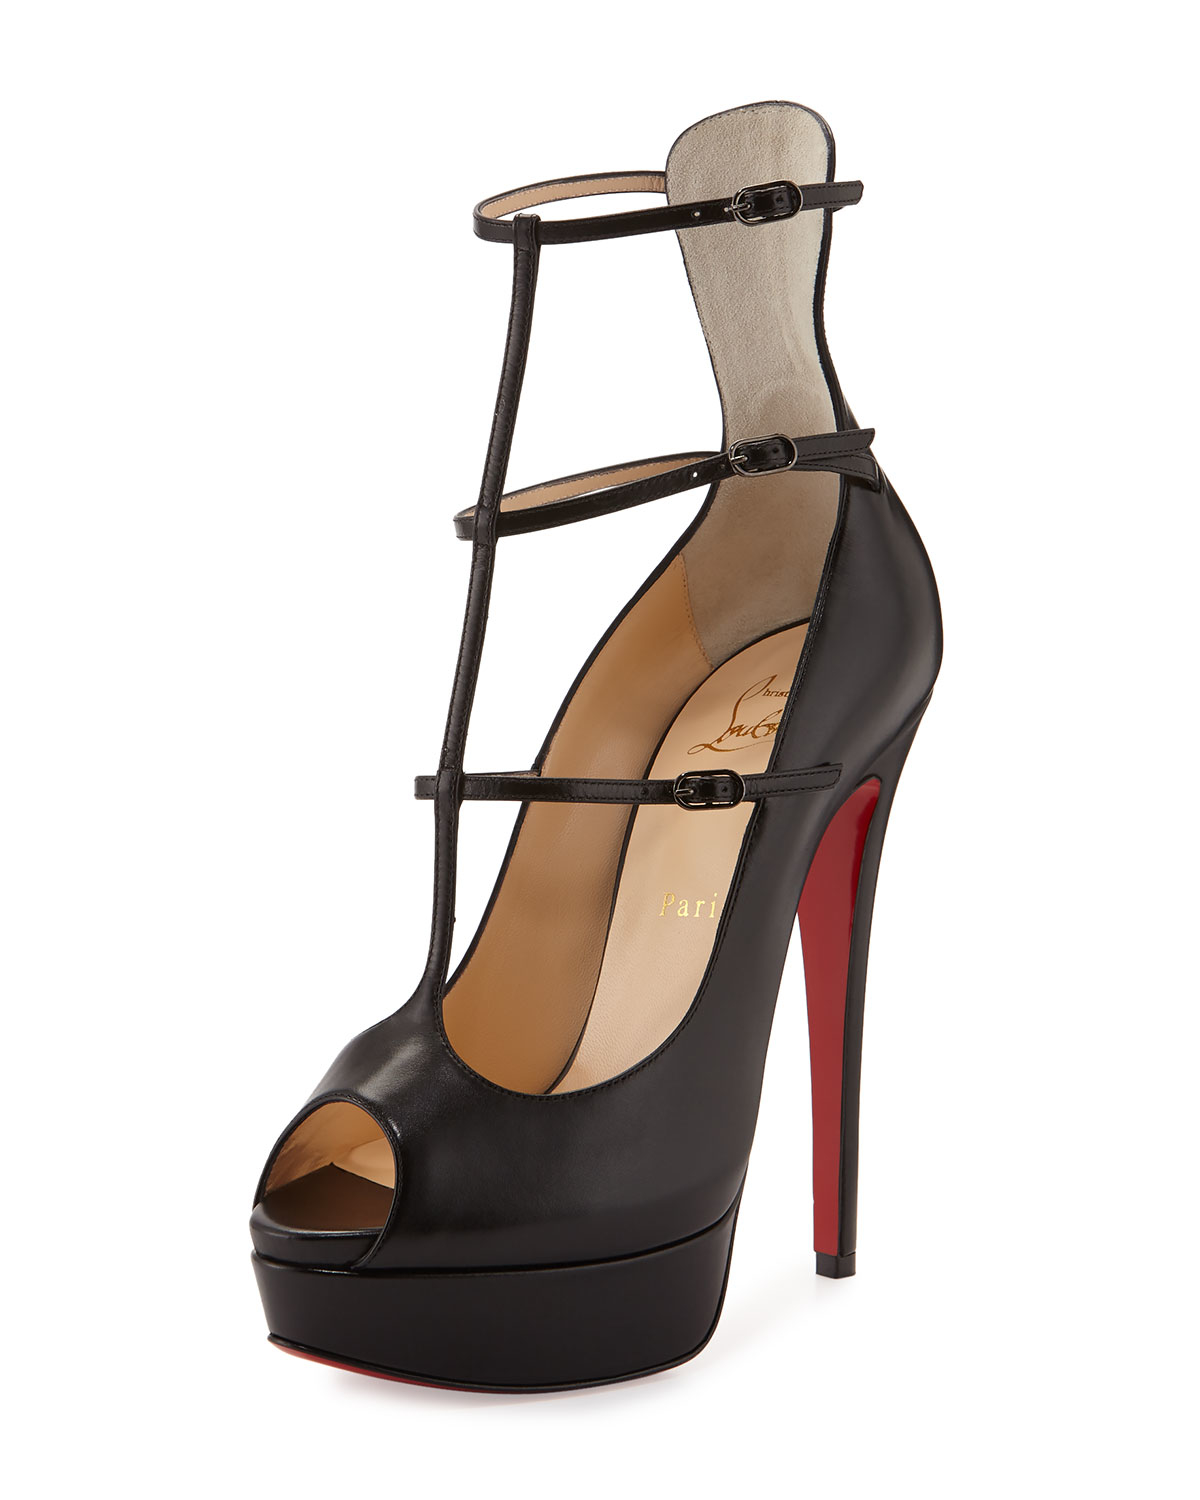 christian louboutin sneakers men - Christian louboutin Sistoerless Caged Leather Pumps in Black (BLK ...